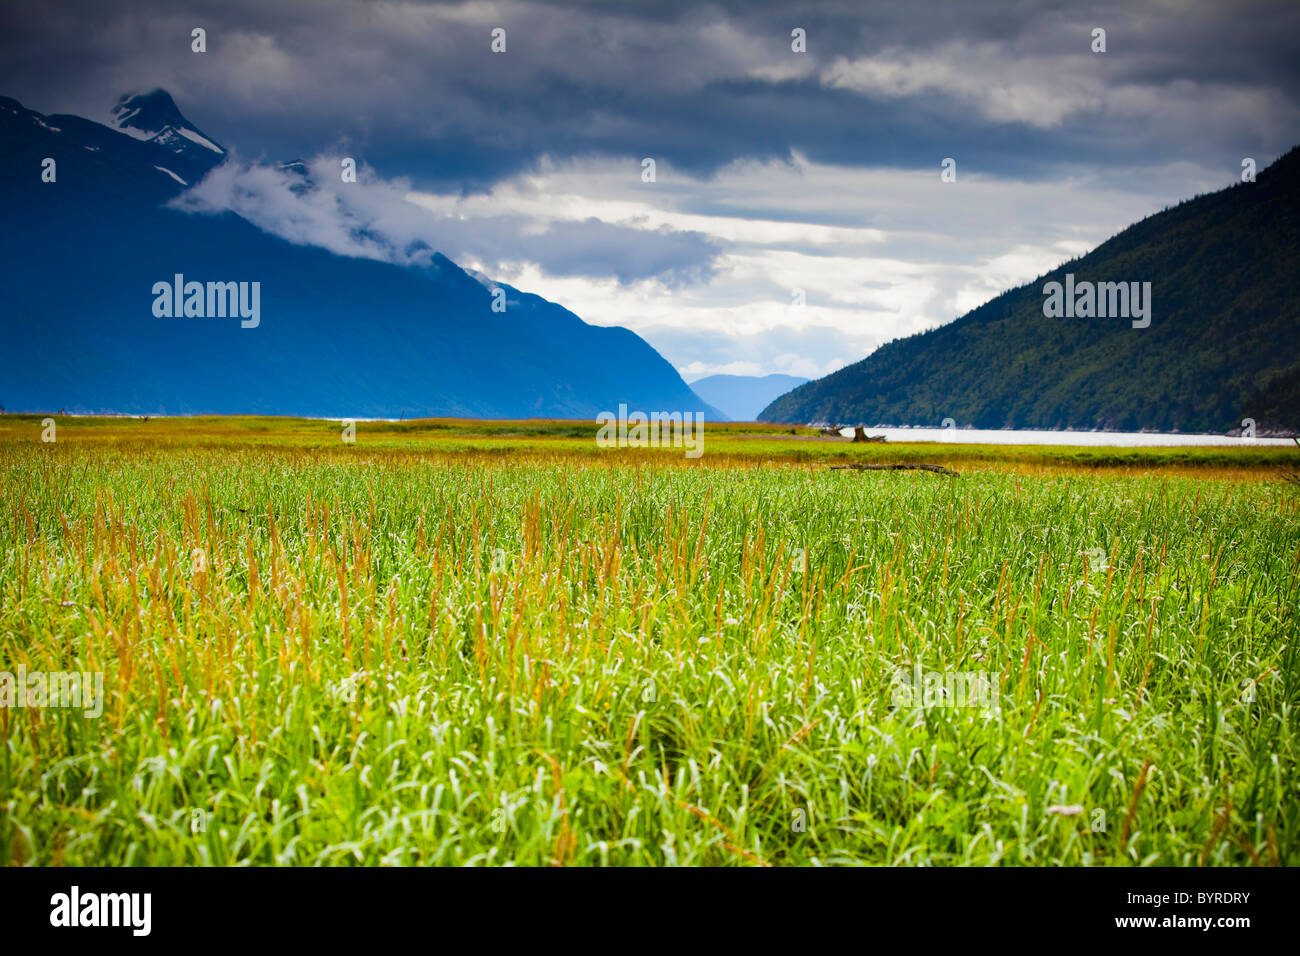 grass in the tidal flats and chilkat mountains with a view of taiya river; skagway, alaska, united states of america - Stock Image